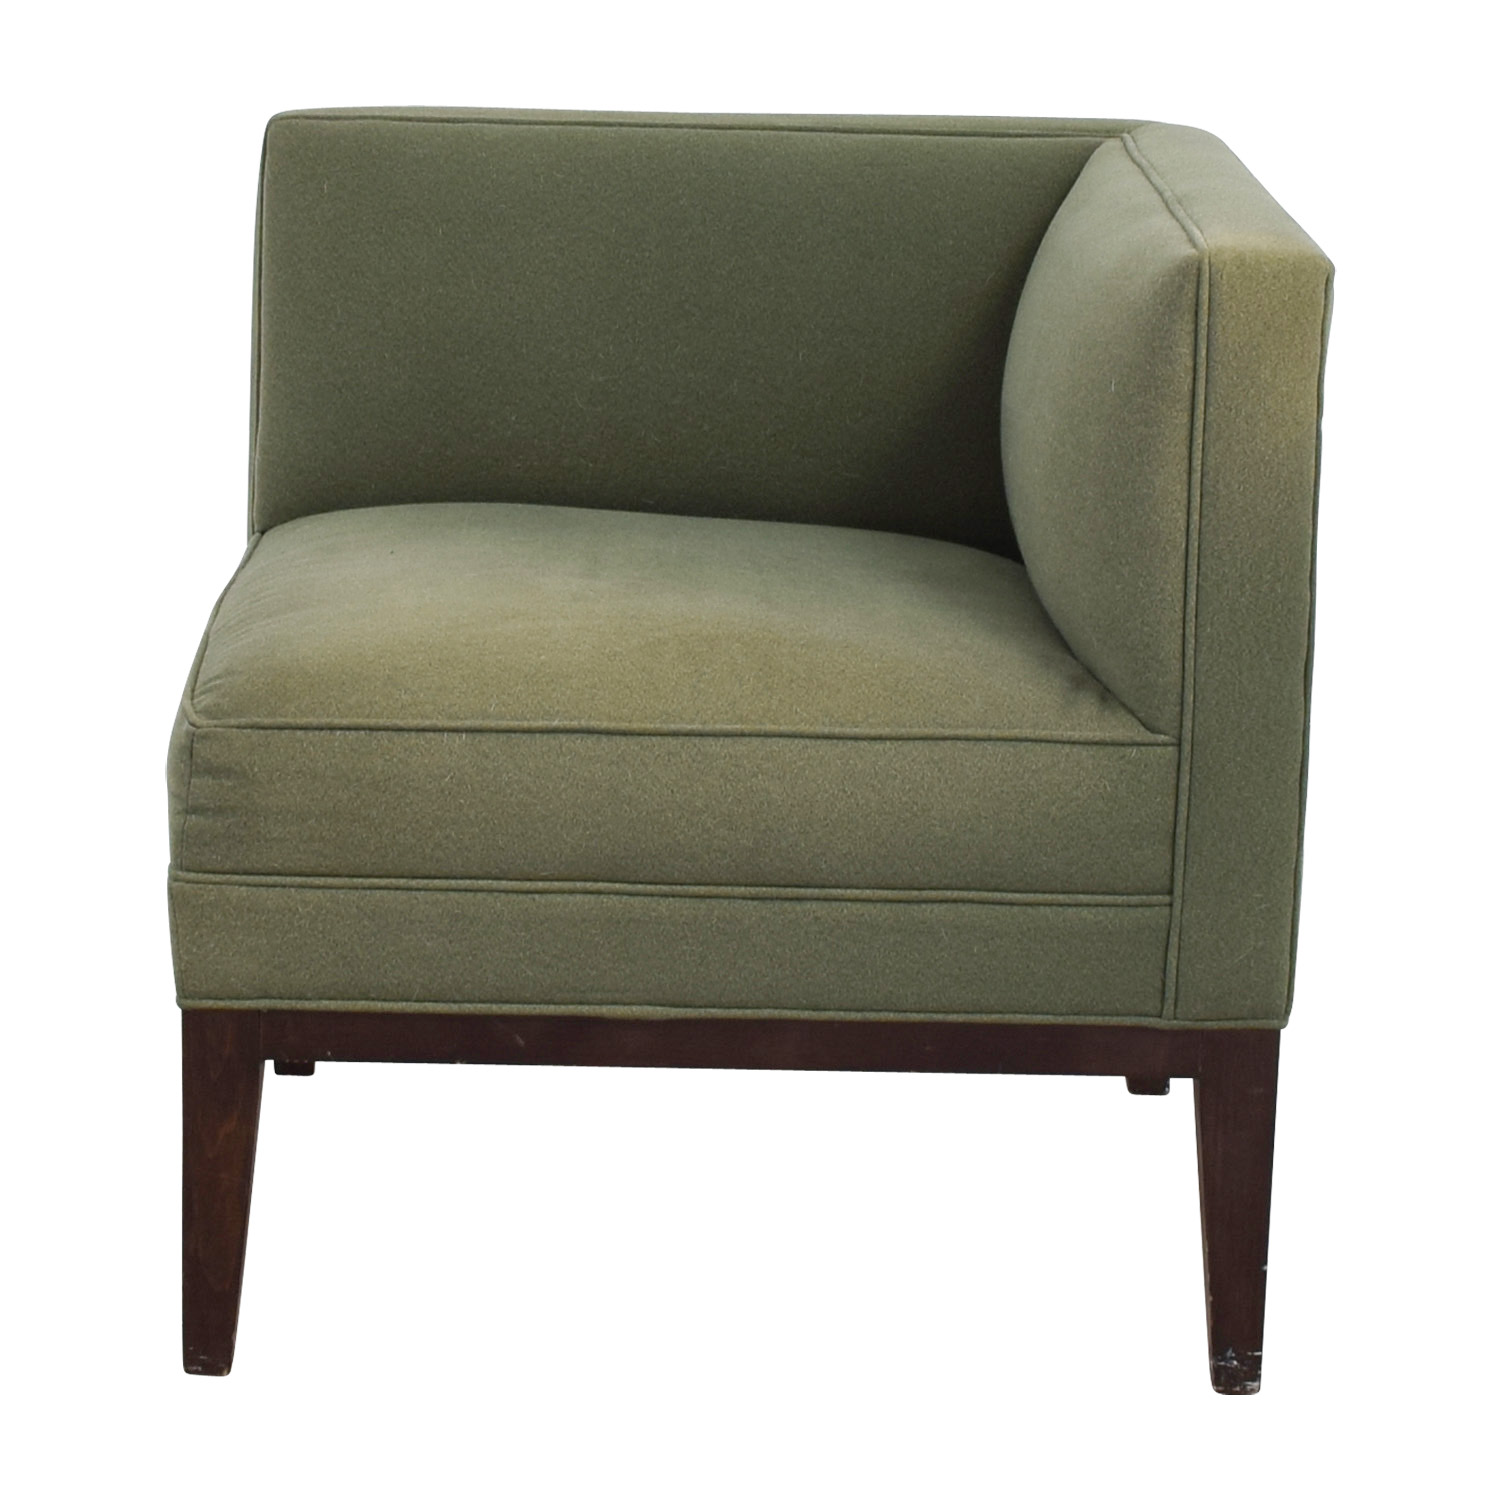 Mitchell Gold + Bob Williams Mitchell Gold + Bob Williams Sage Green Corner  Accent Chair Used ...